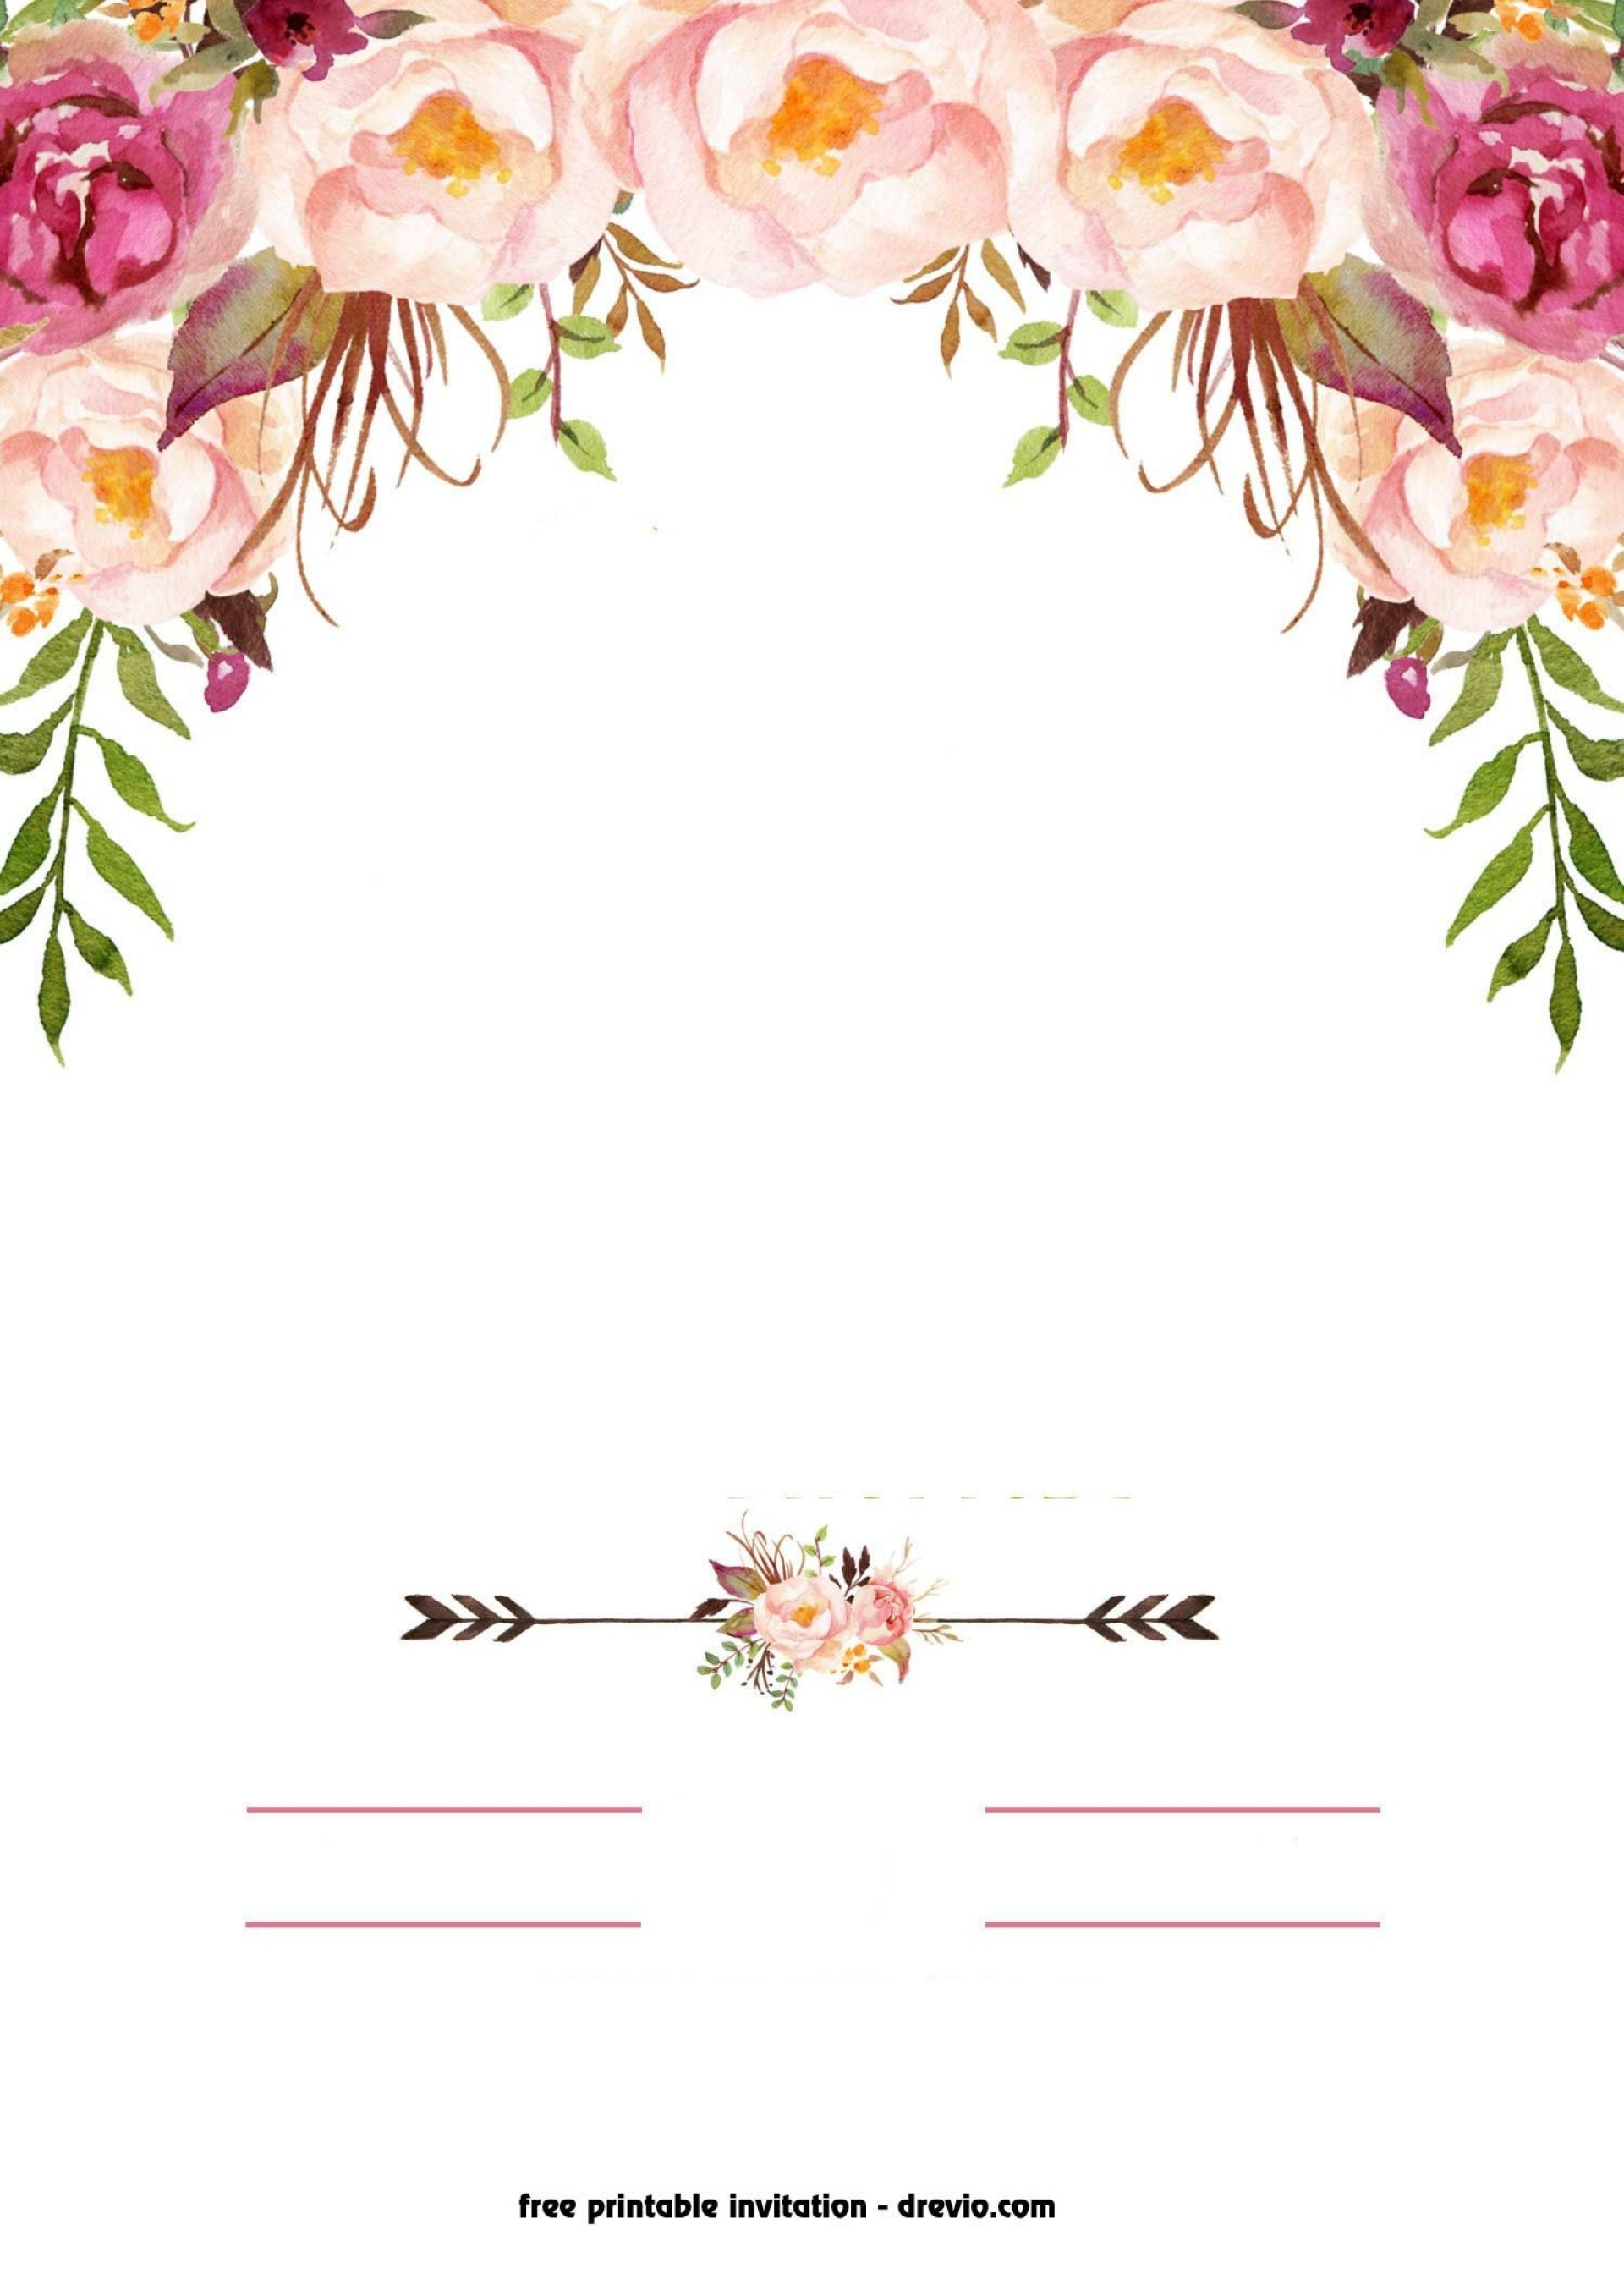 018 Free Printable Baby Cards Templates Template Phenomenal Ideas - Free Printable Baby Cards Templates